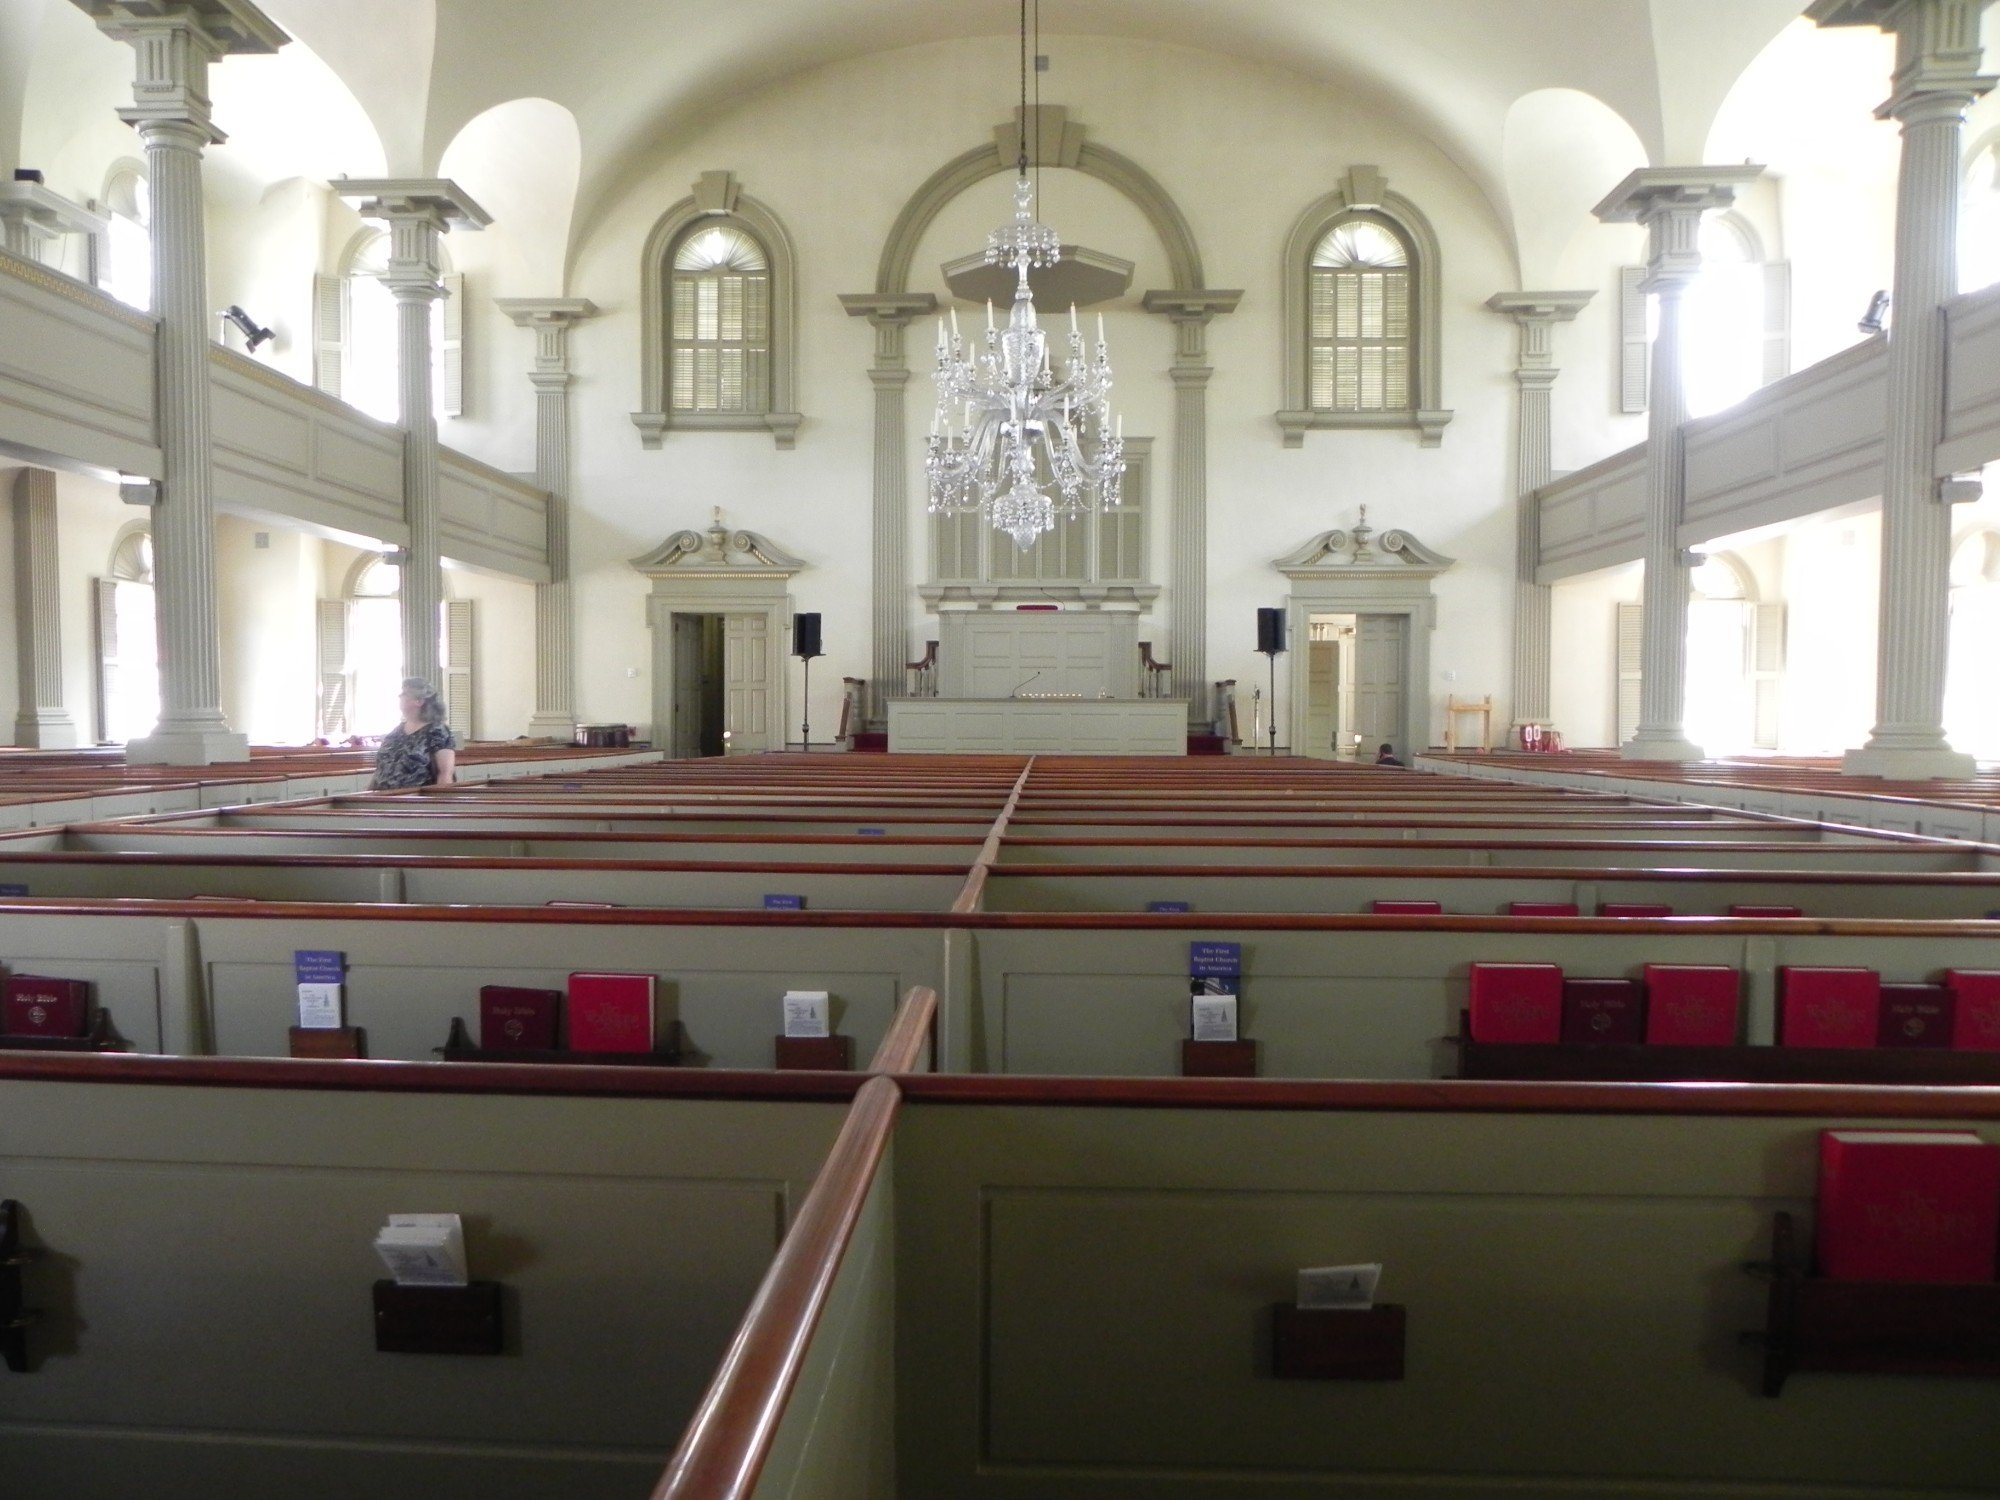 2012 Picture of the church building's inside.